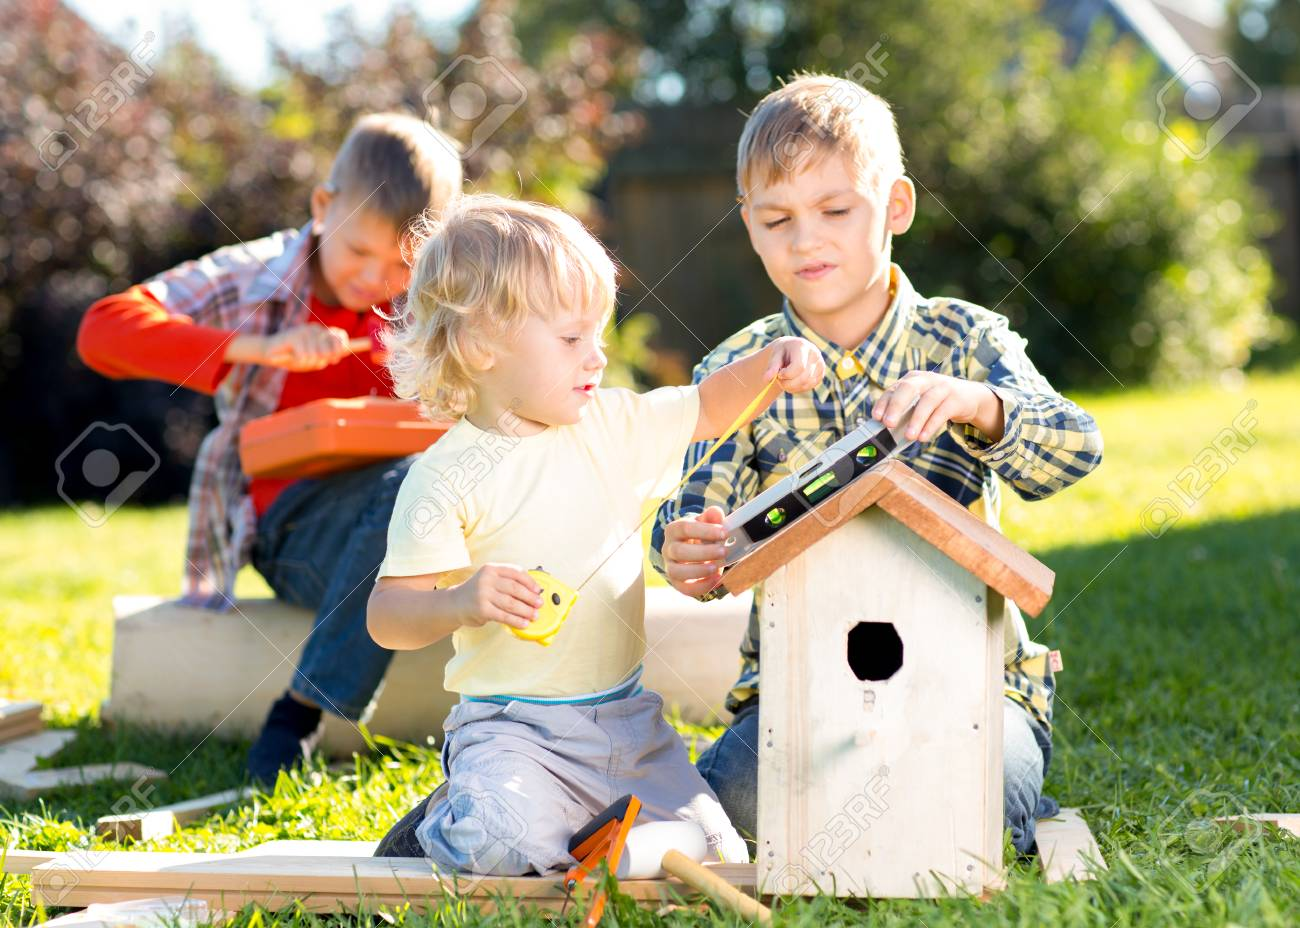 Fine Three Little Boys Brothers Building Birdhouse Outdoors Download Free Architecture Designs Scobabritishbridgeorg